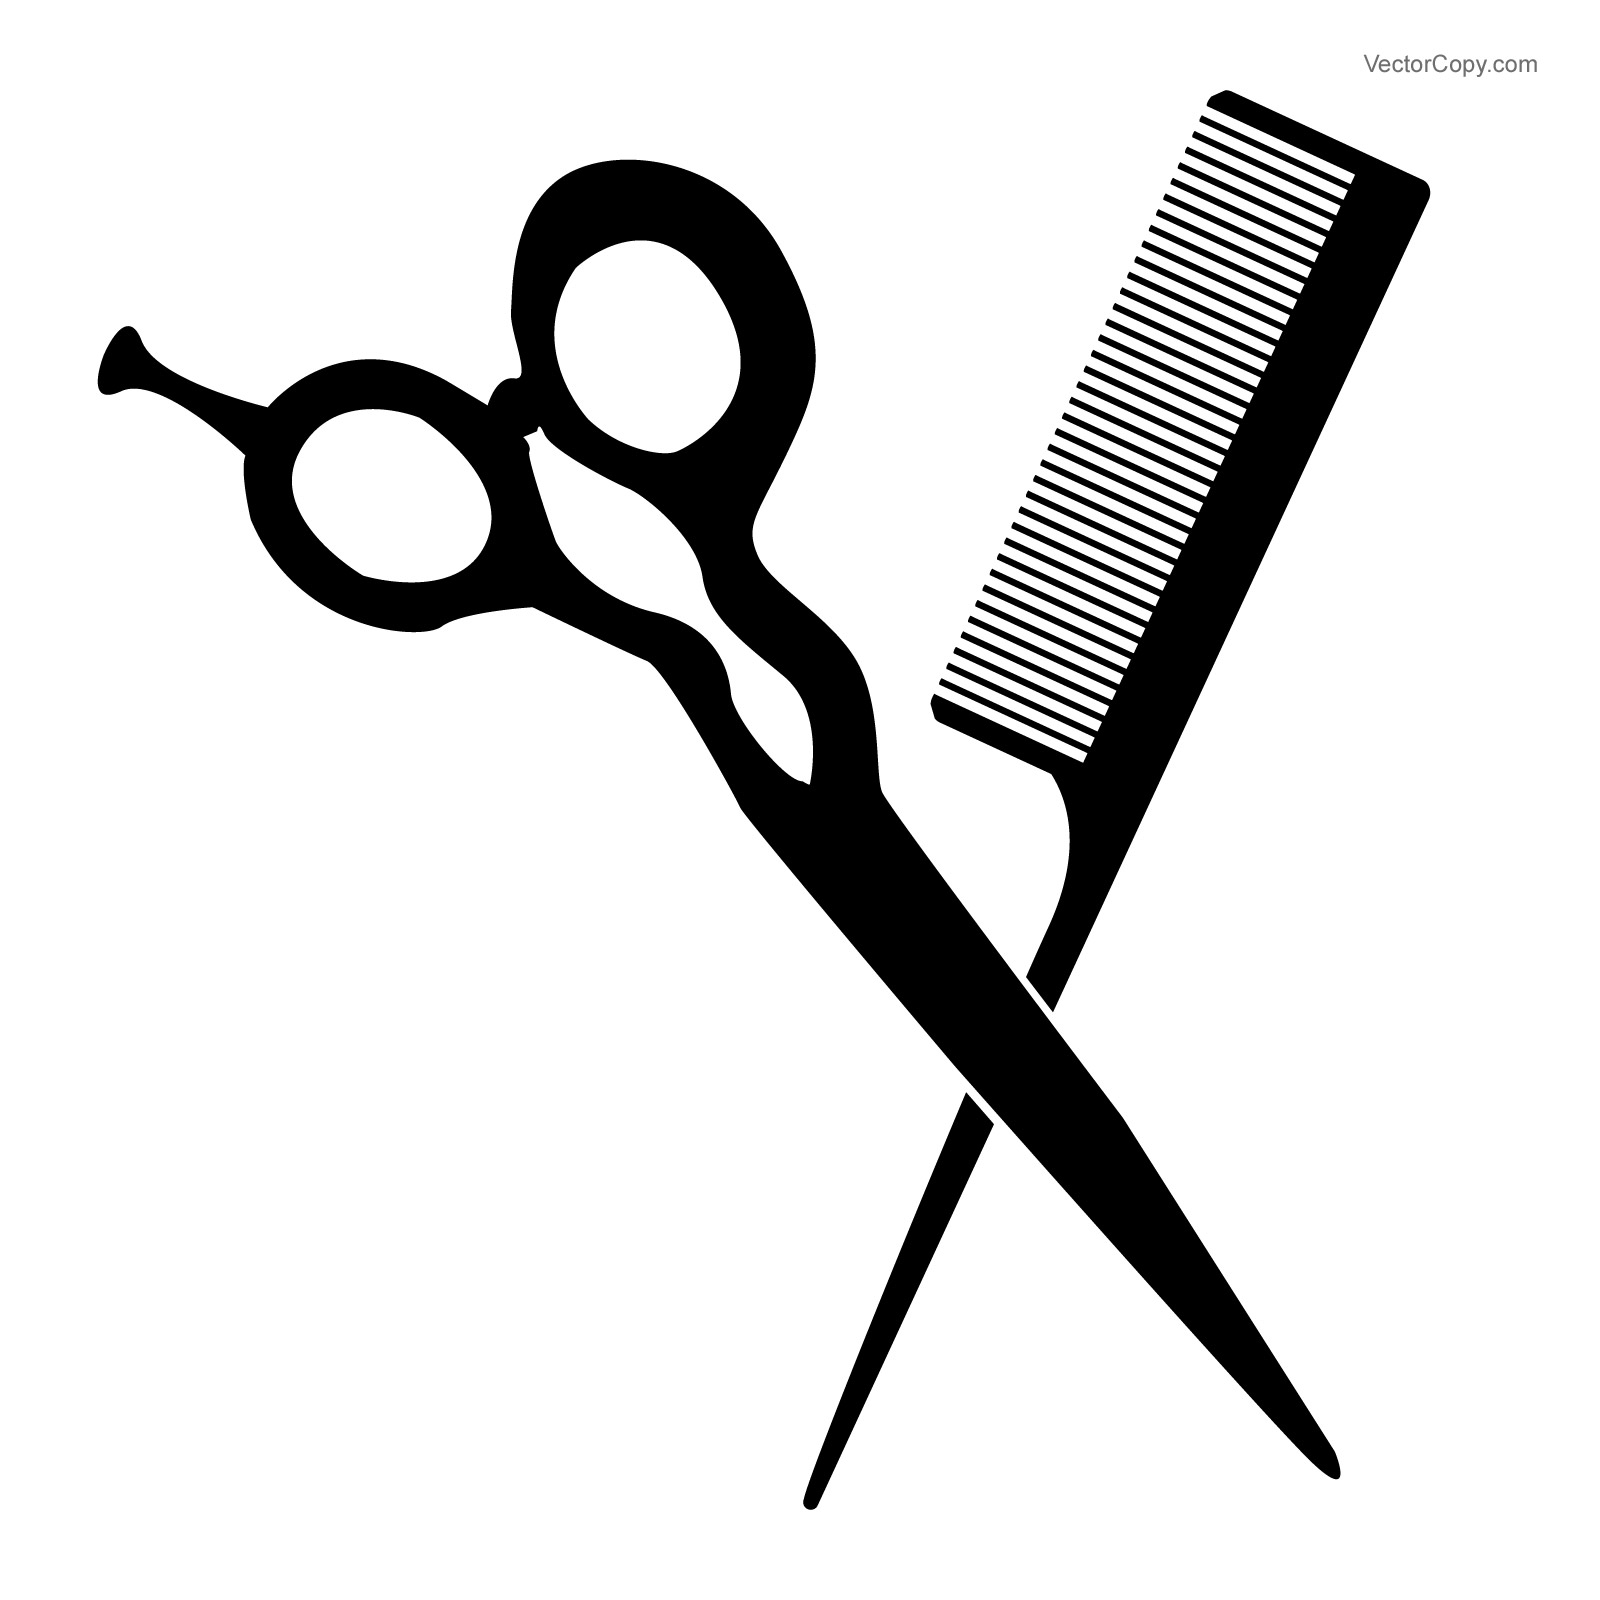 Free Scissors Silhouette Vector, Download Free Clip Art.